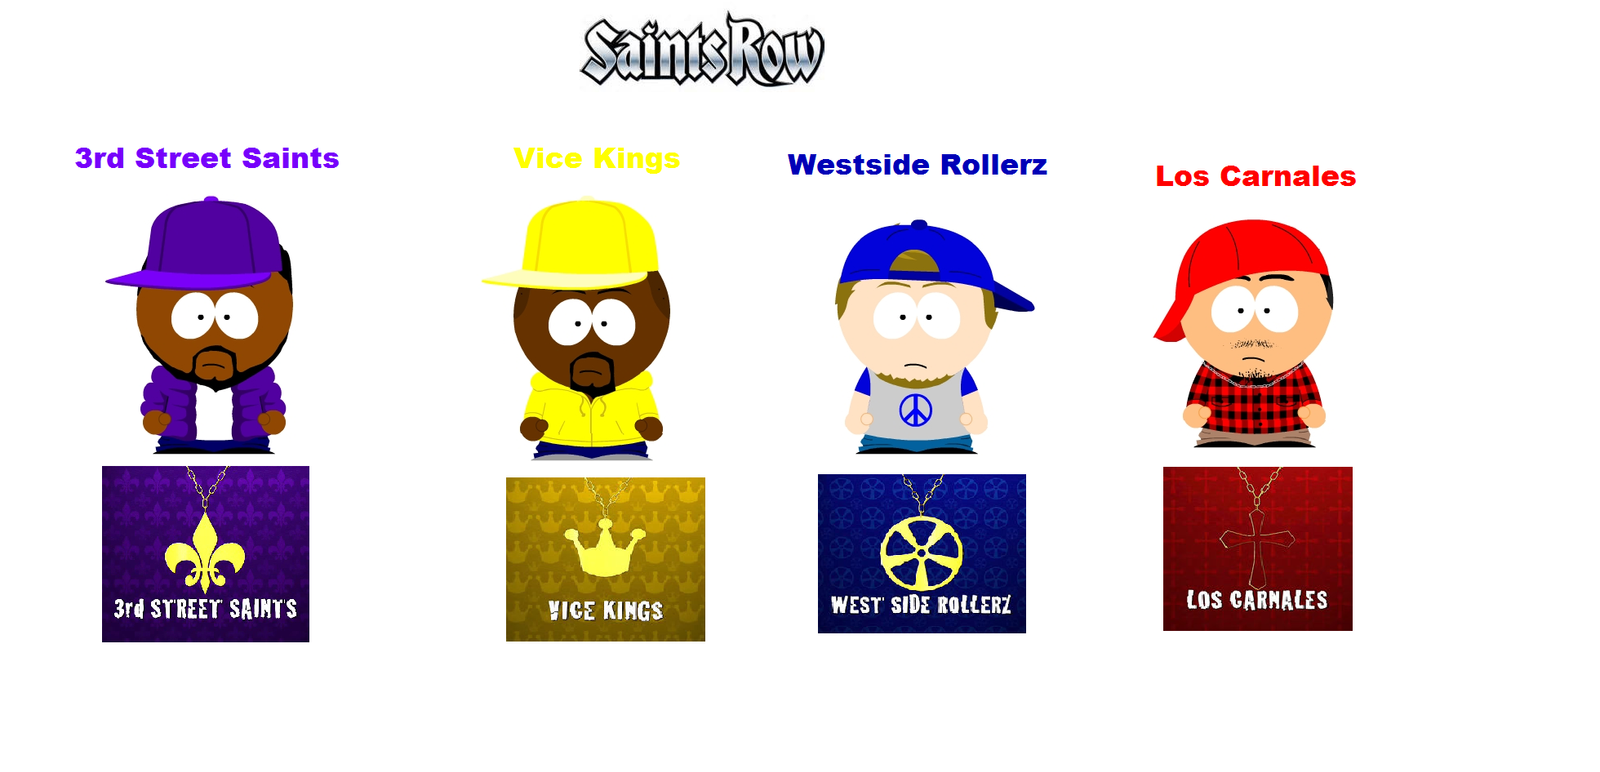 South Park :Saints Row Gangs by deonpalmer45 on DeviantArt